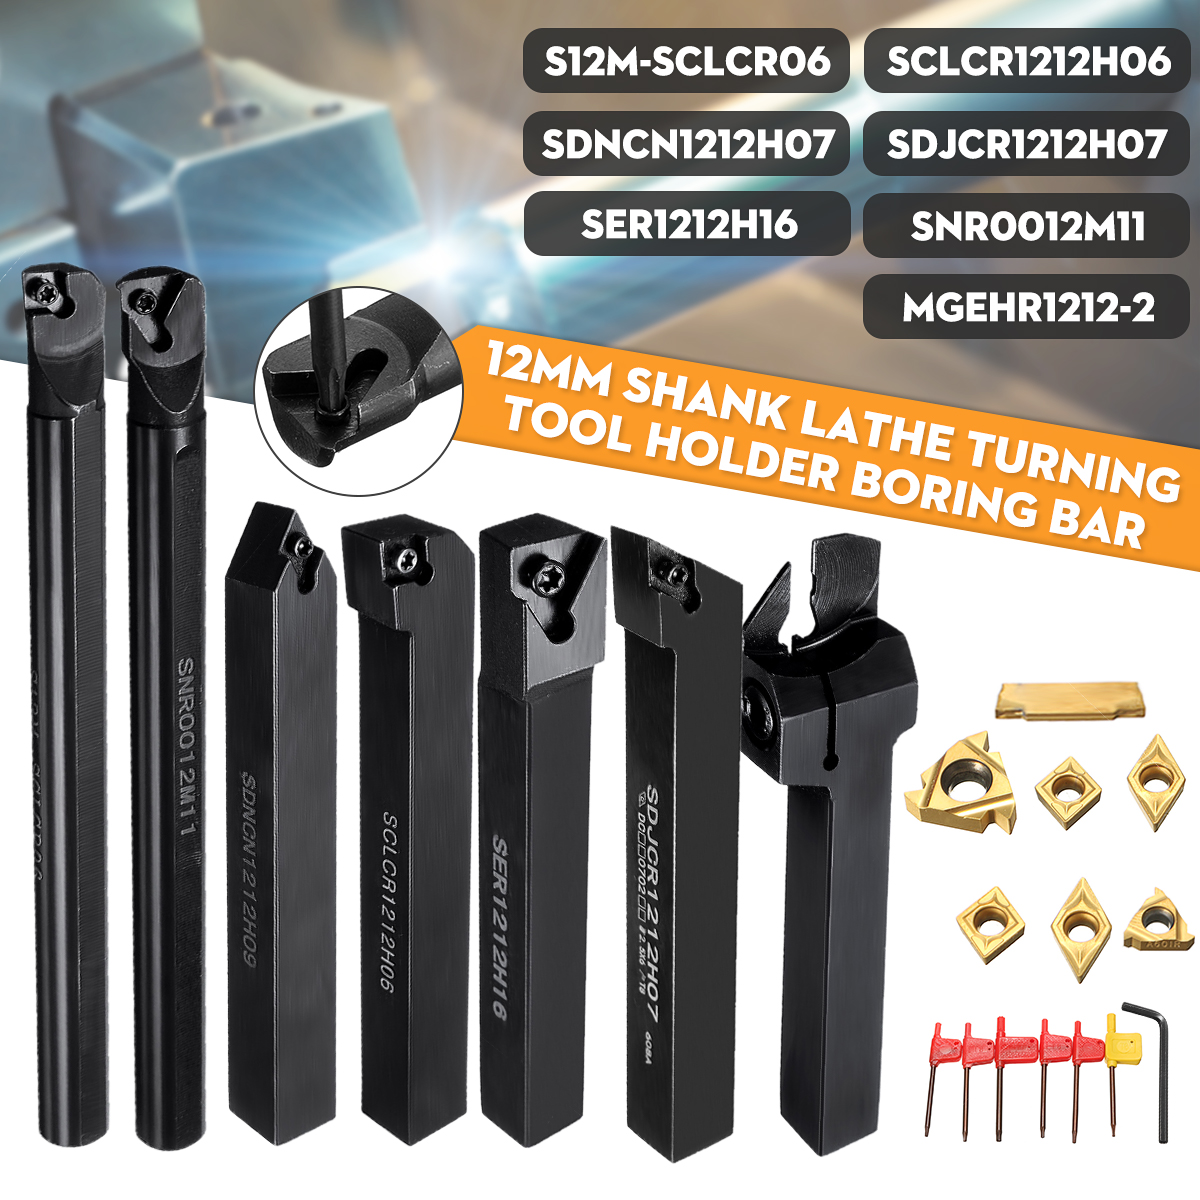 21Pcs/Set 12mm Shank Lathe Turning Tool Holder Boring Bar +Insert+Wrench S12M-SCLCR06/SER1212H16/SCL1212H06